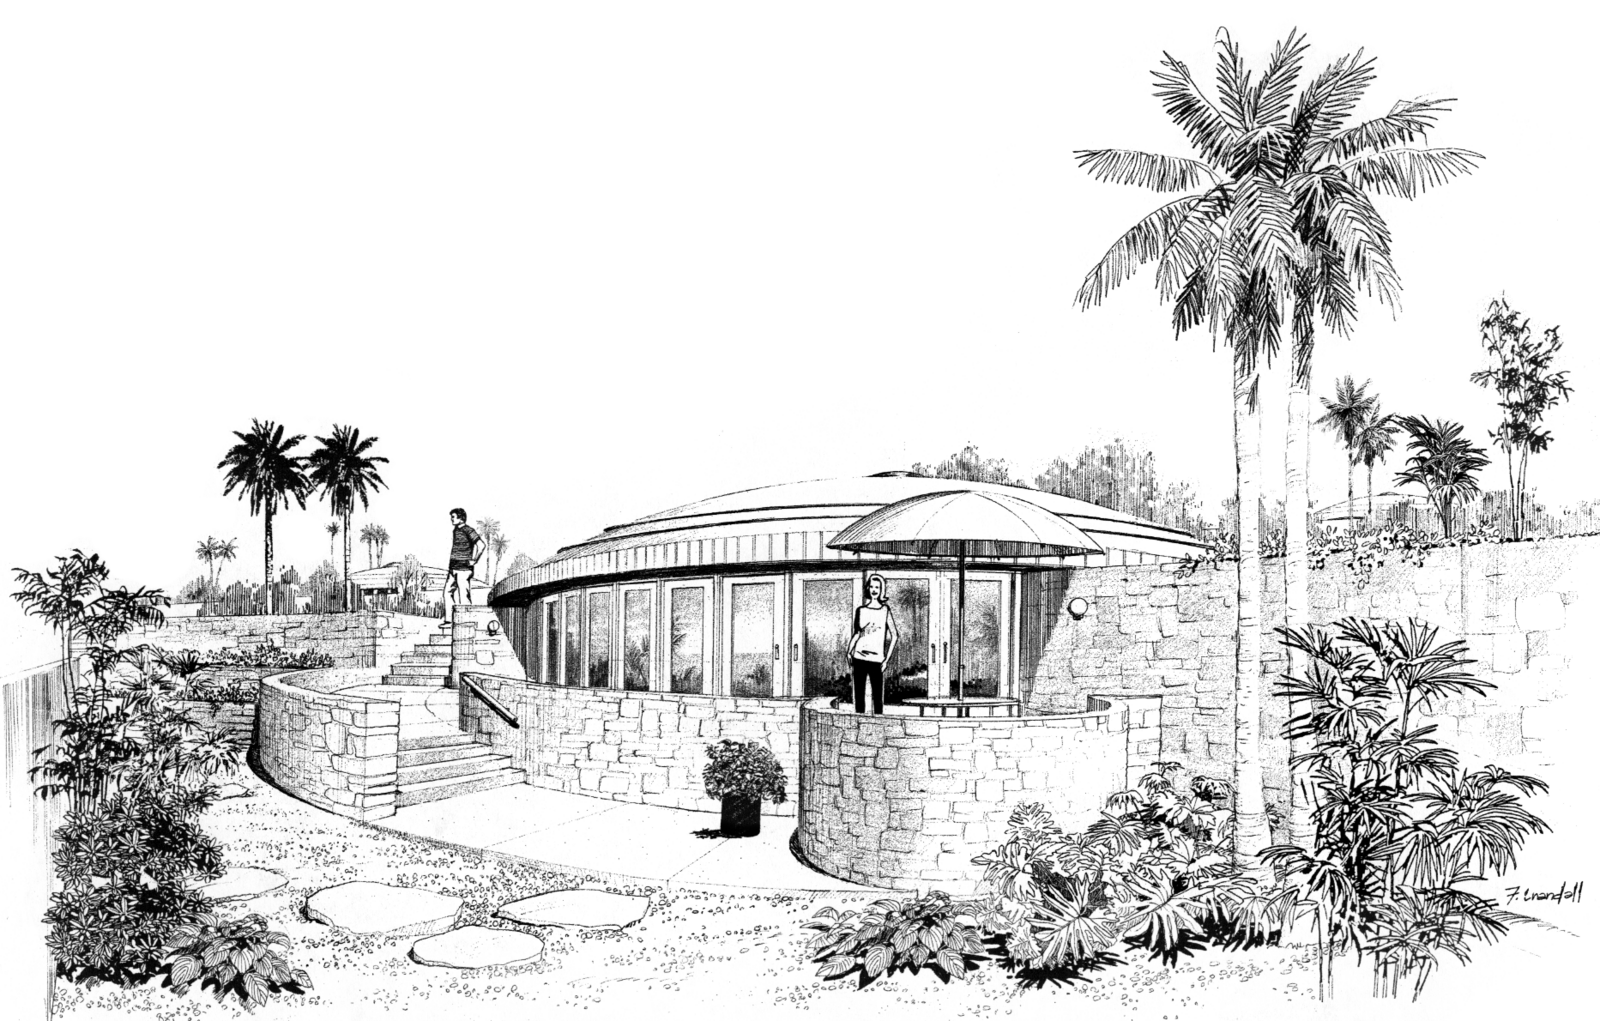 Beautiful exterior sketch of a Monolithic Dome Home.